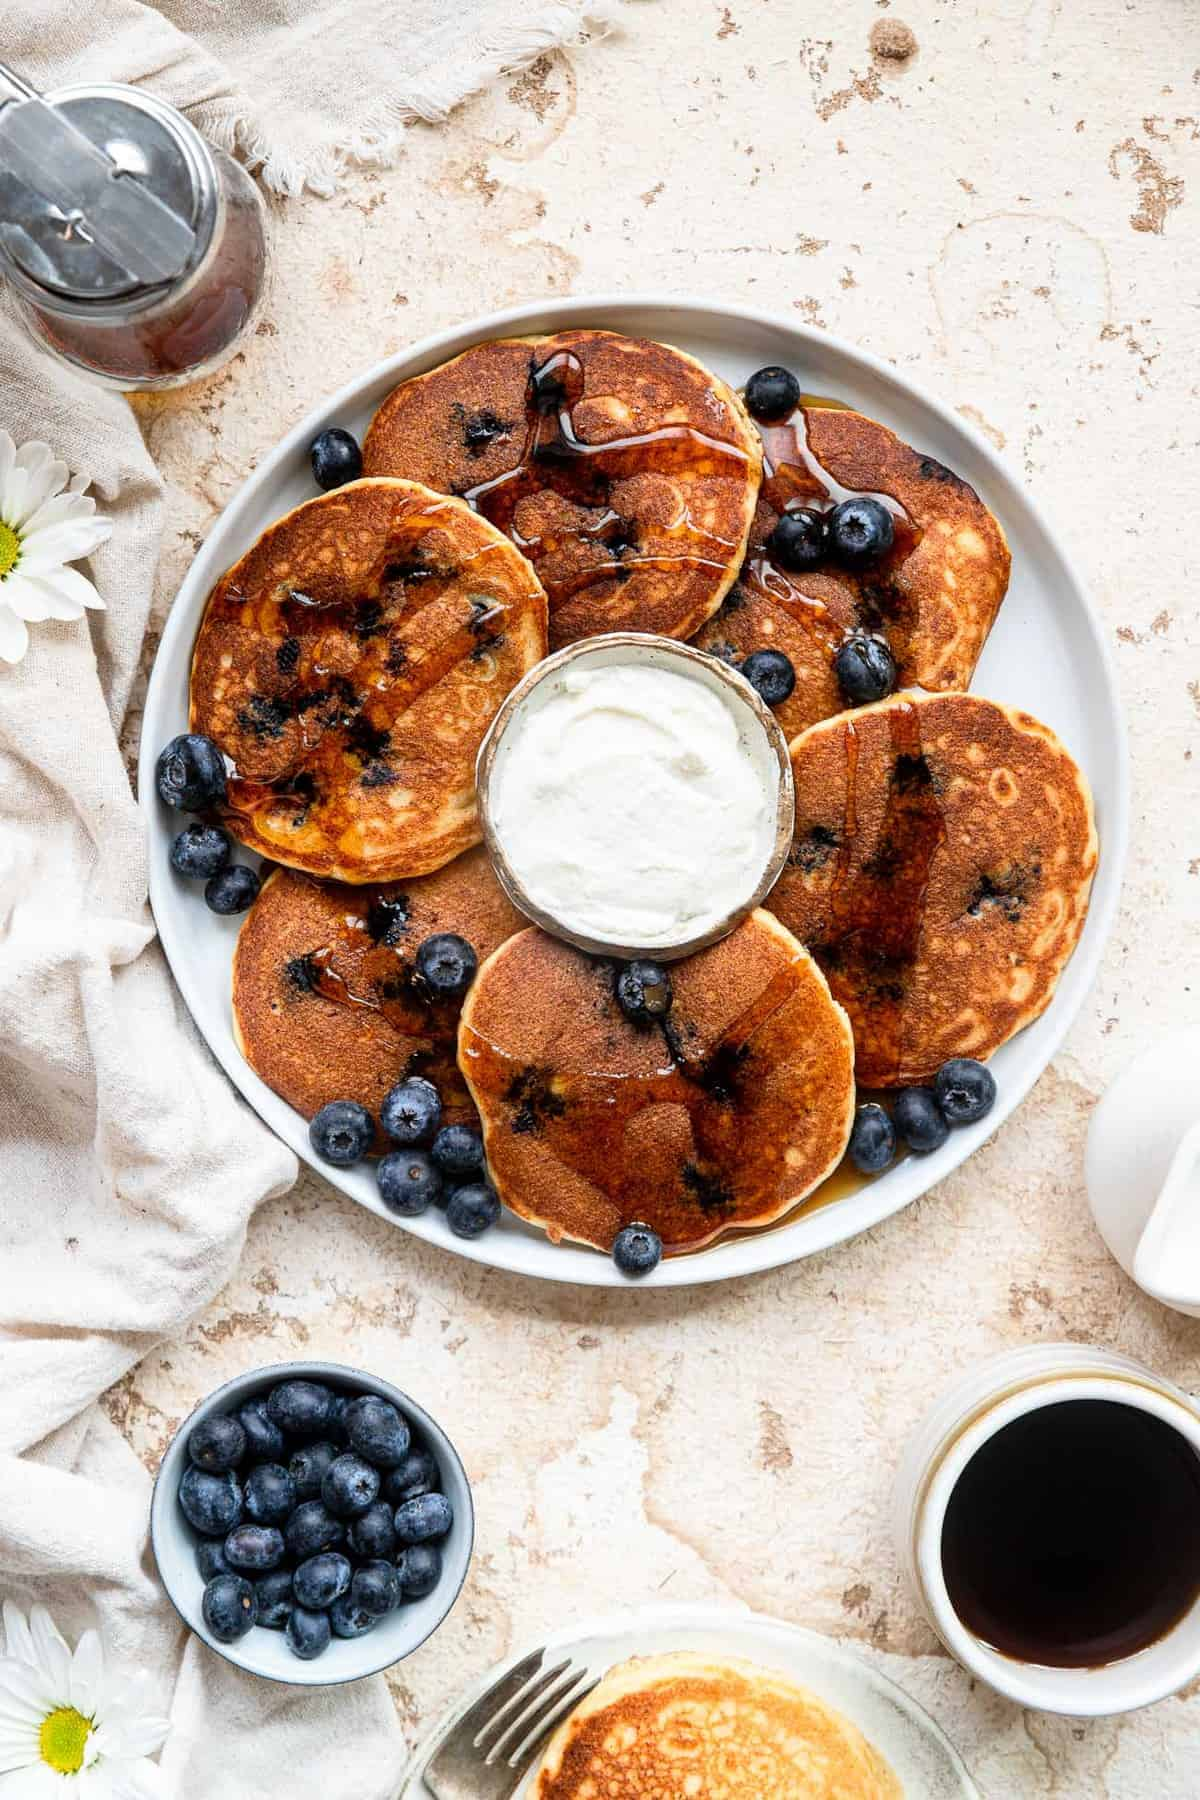 Blueberry pancake recipe on a large plat with sauce